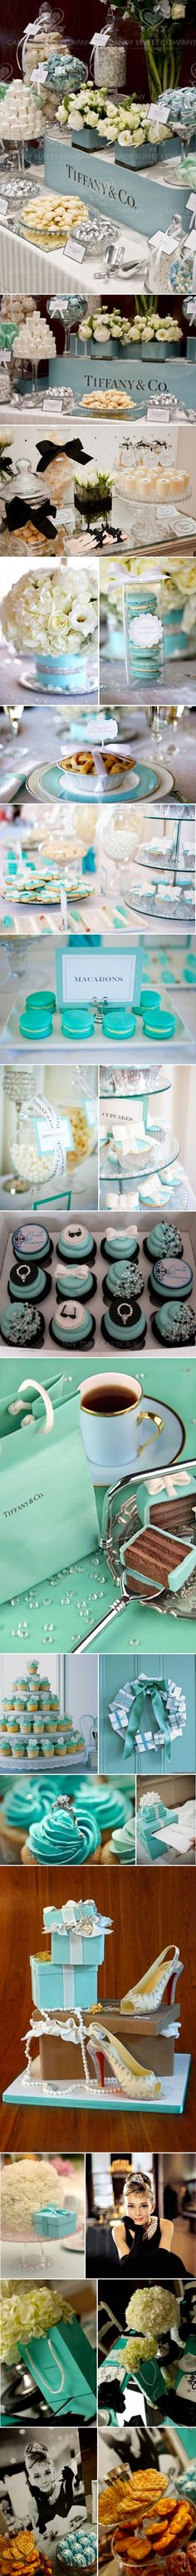 Breakfast at Tiffany's Themed Bridal Shower...cute!